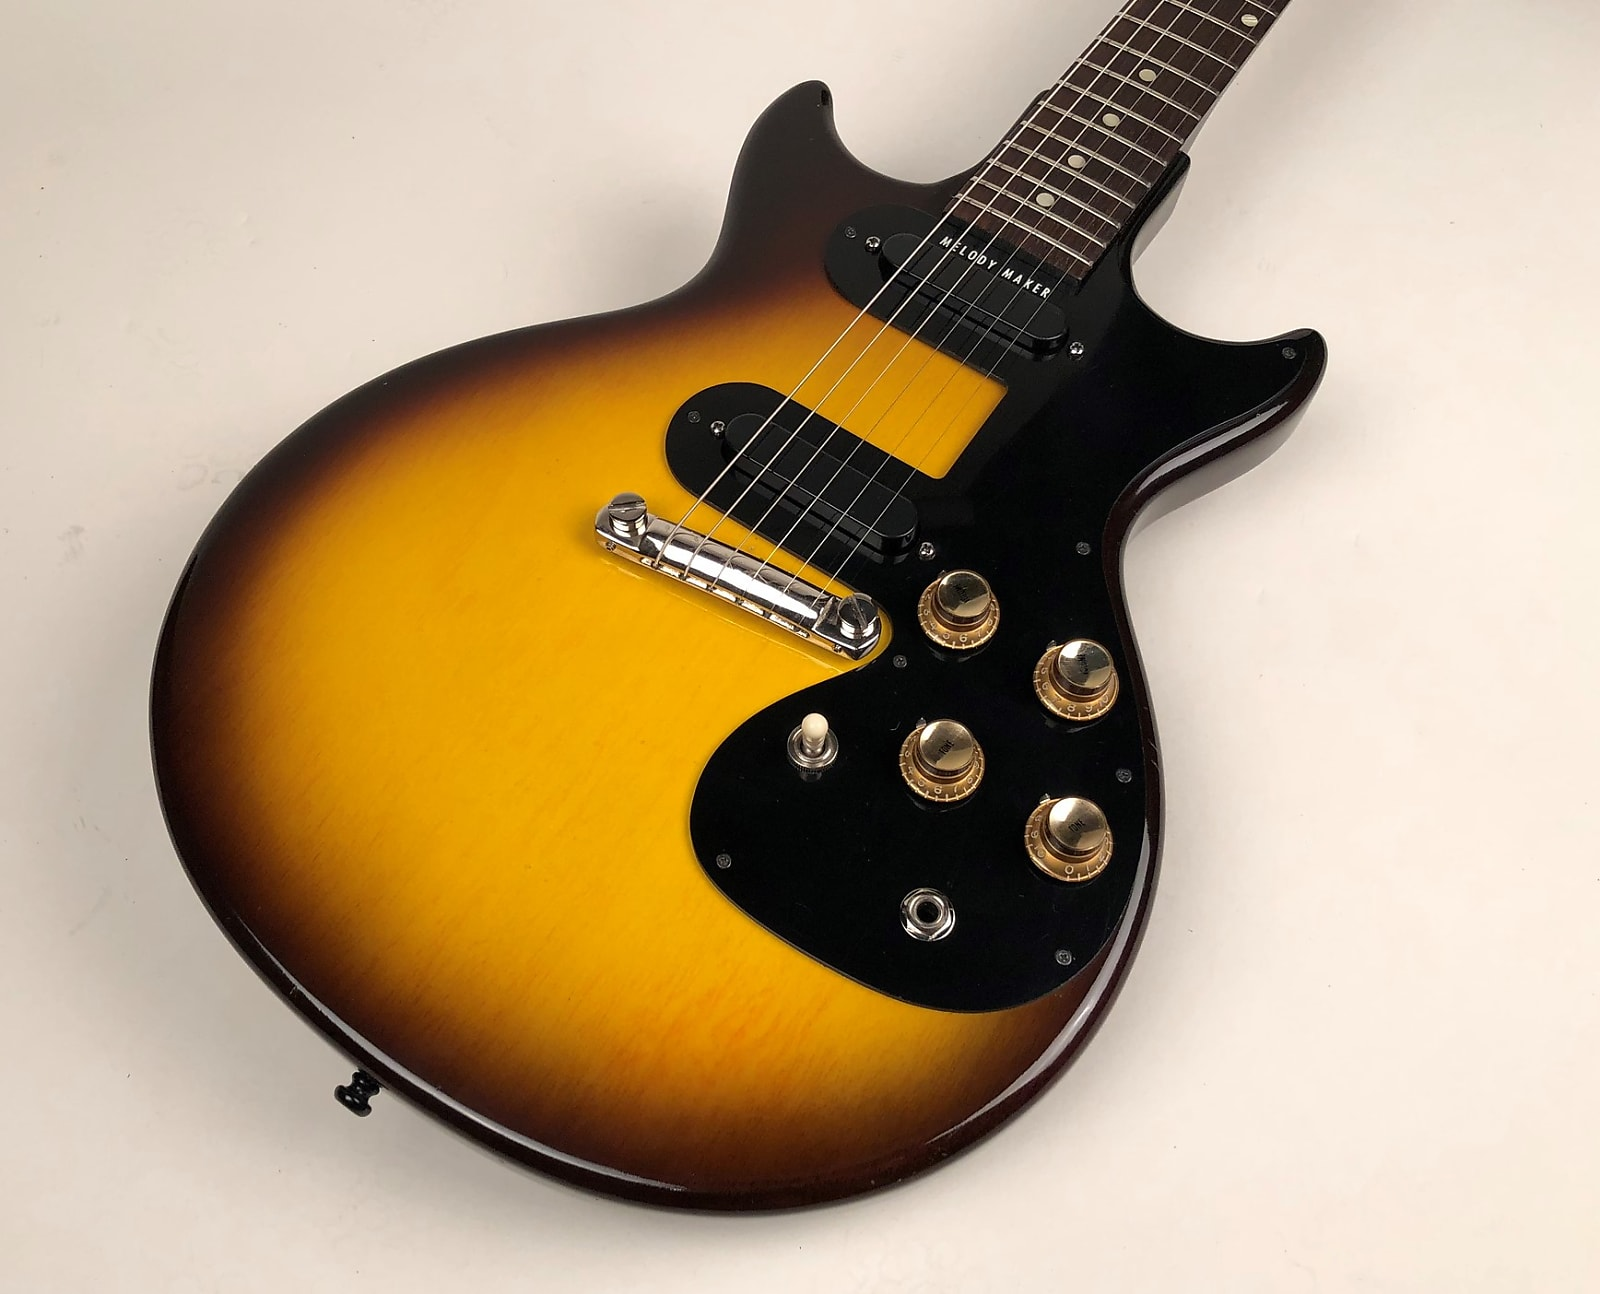 Clean One Owner 1961 Gibson Melody Maker D in Sunburst with Original Brown Case